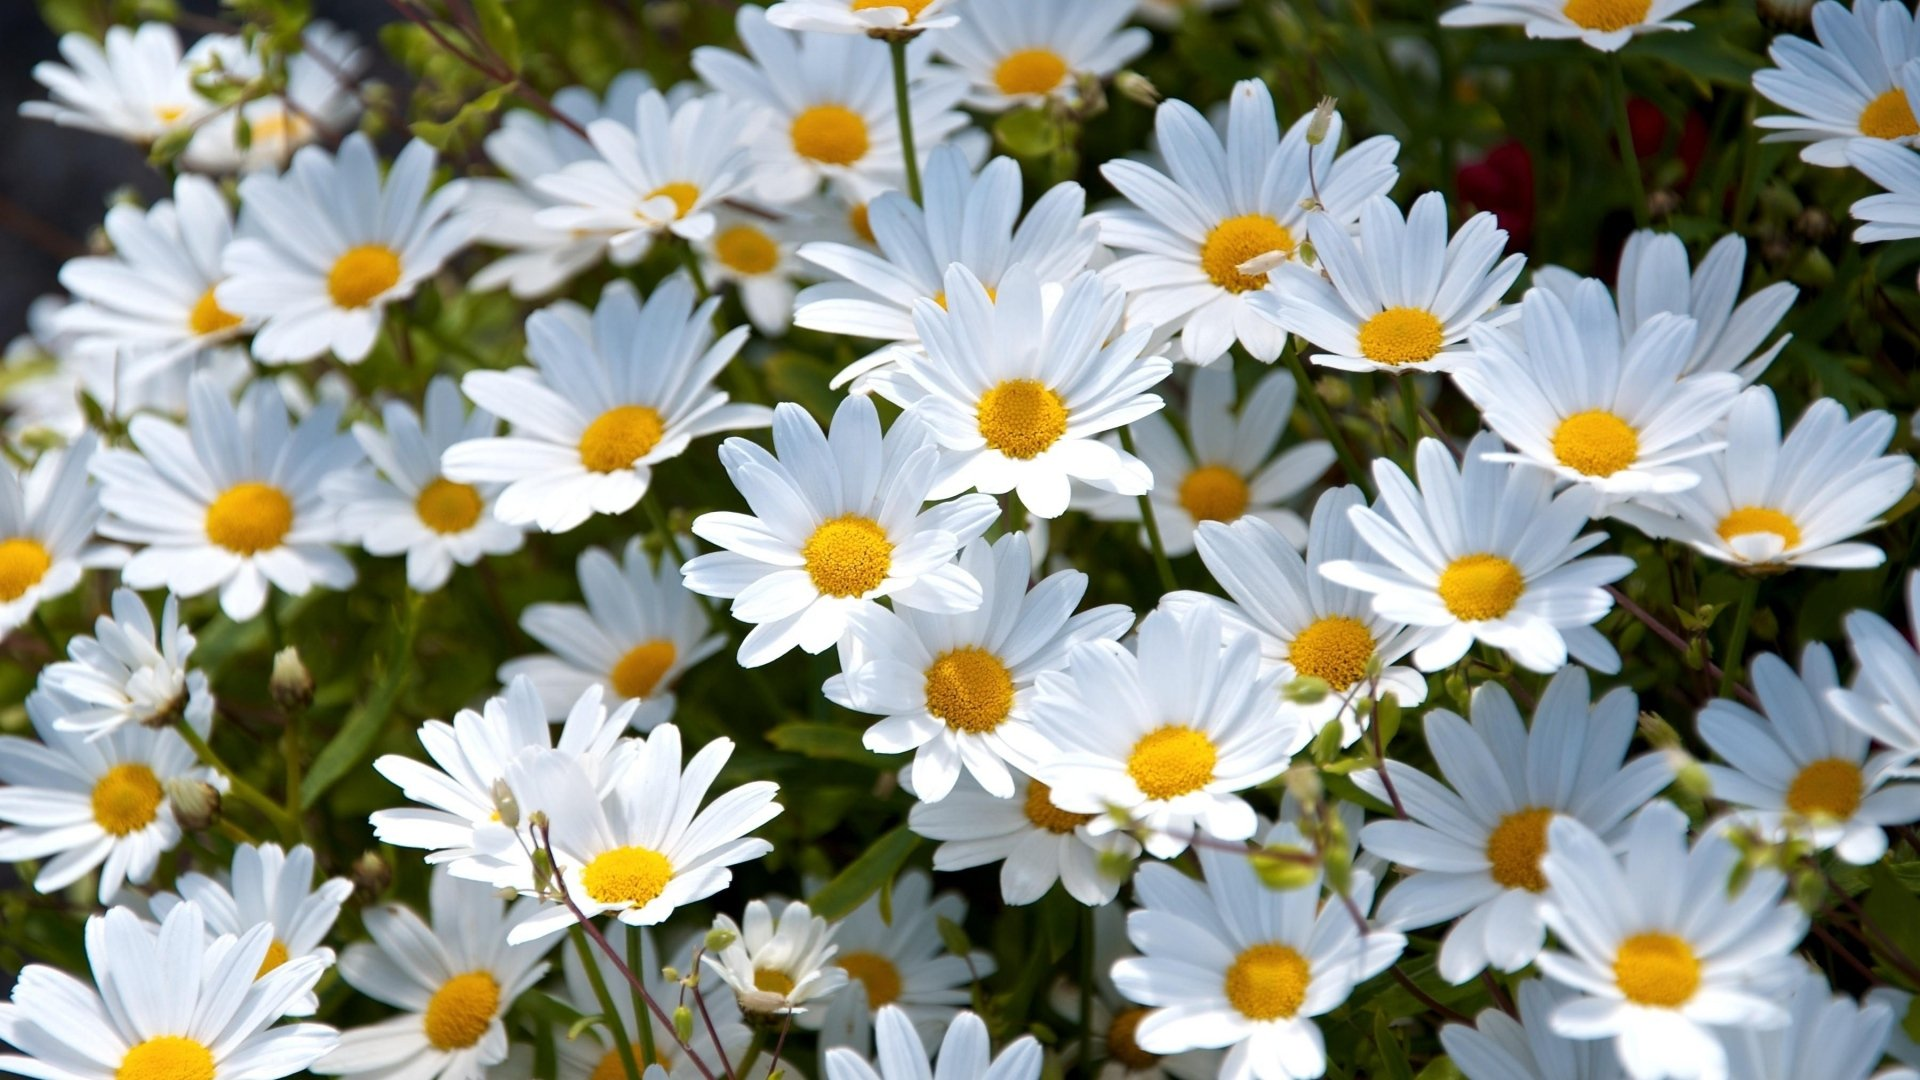 402 daisy hd wallpapers background images wallpaper abyss hd wallpaper background image id683913 izmirmasajfo